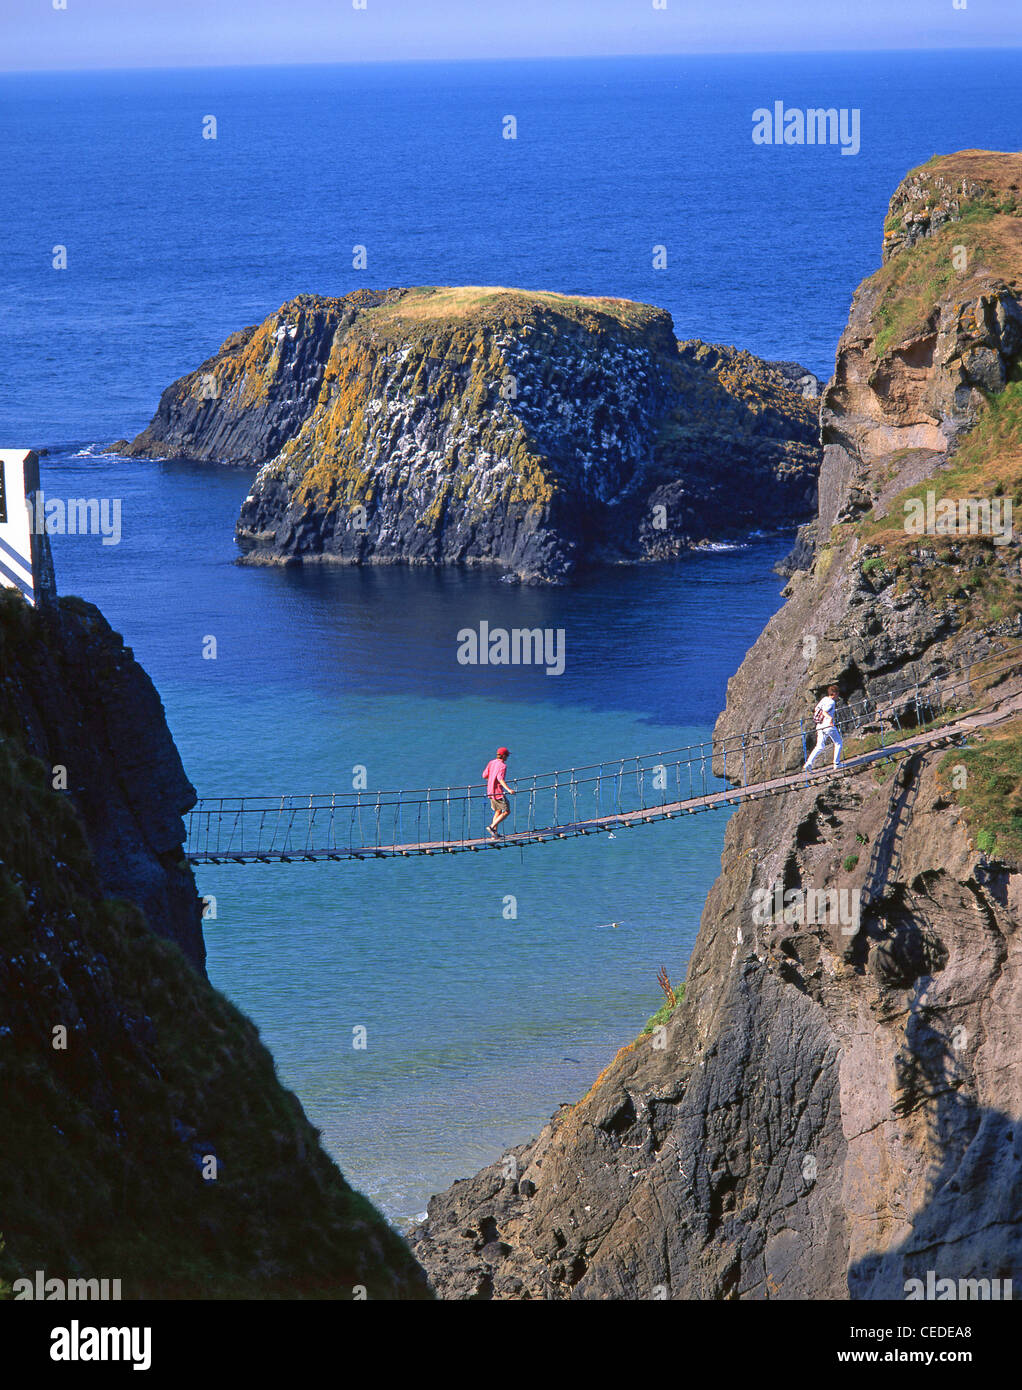 Carrick-A-Rede Rope Bridge, near Ballintoy, County Antrim, Northern Ireland, United Kingdom - Stock Image